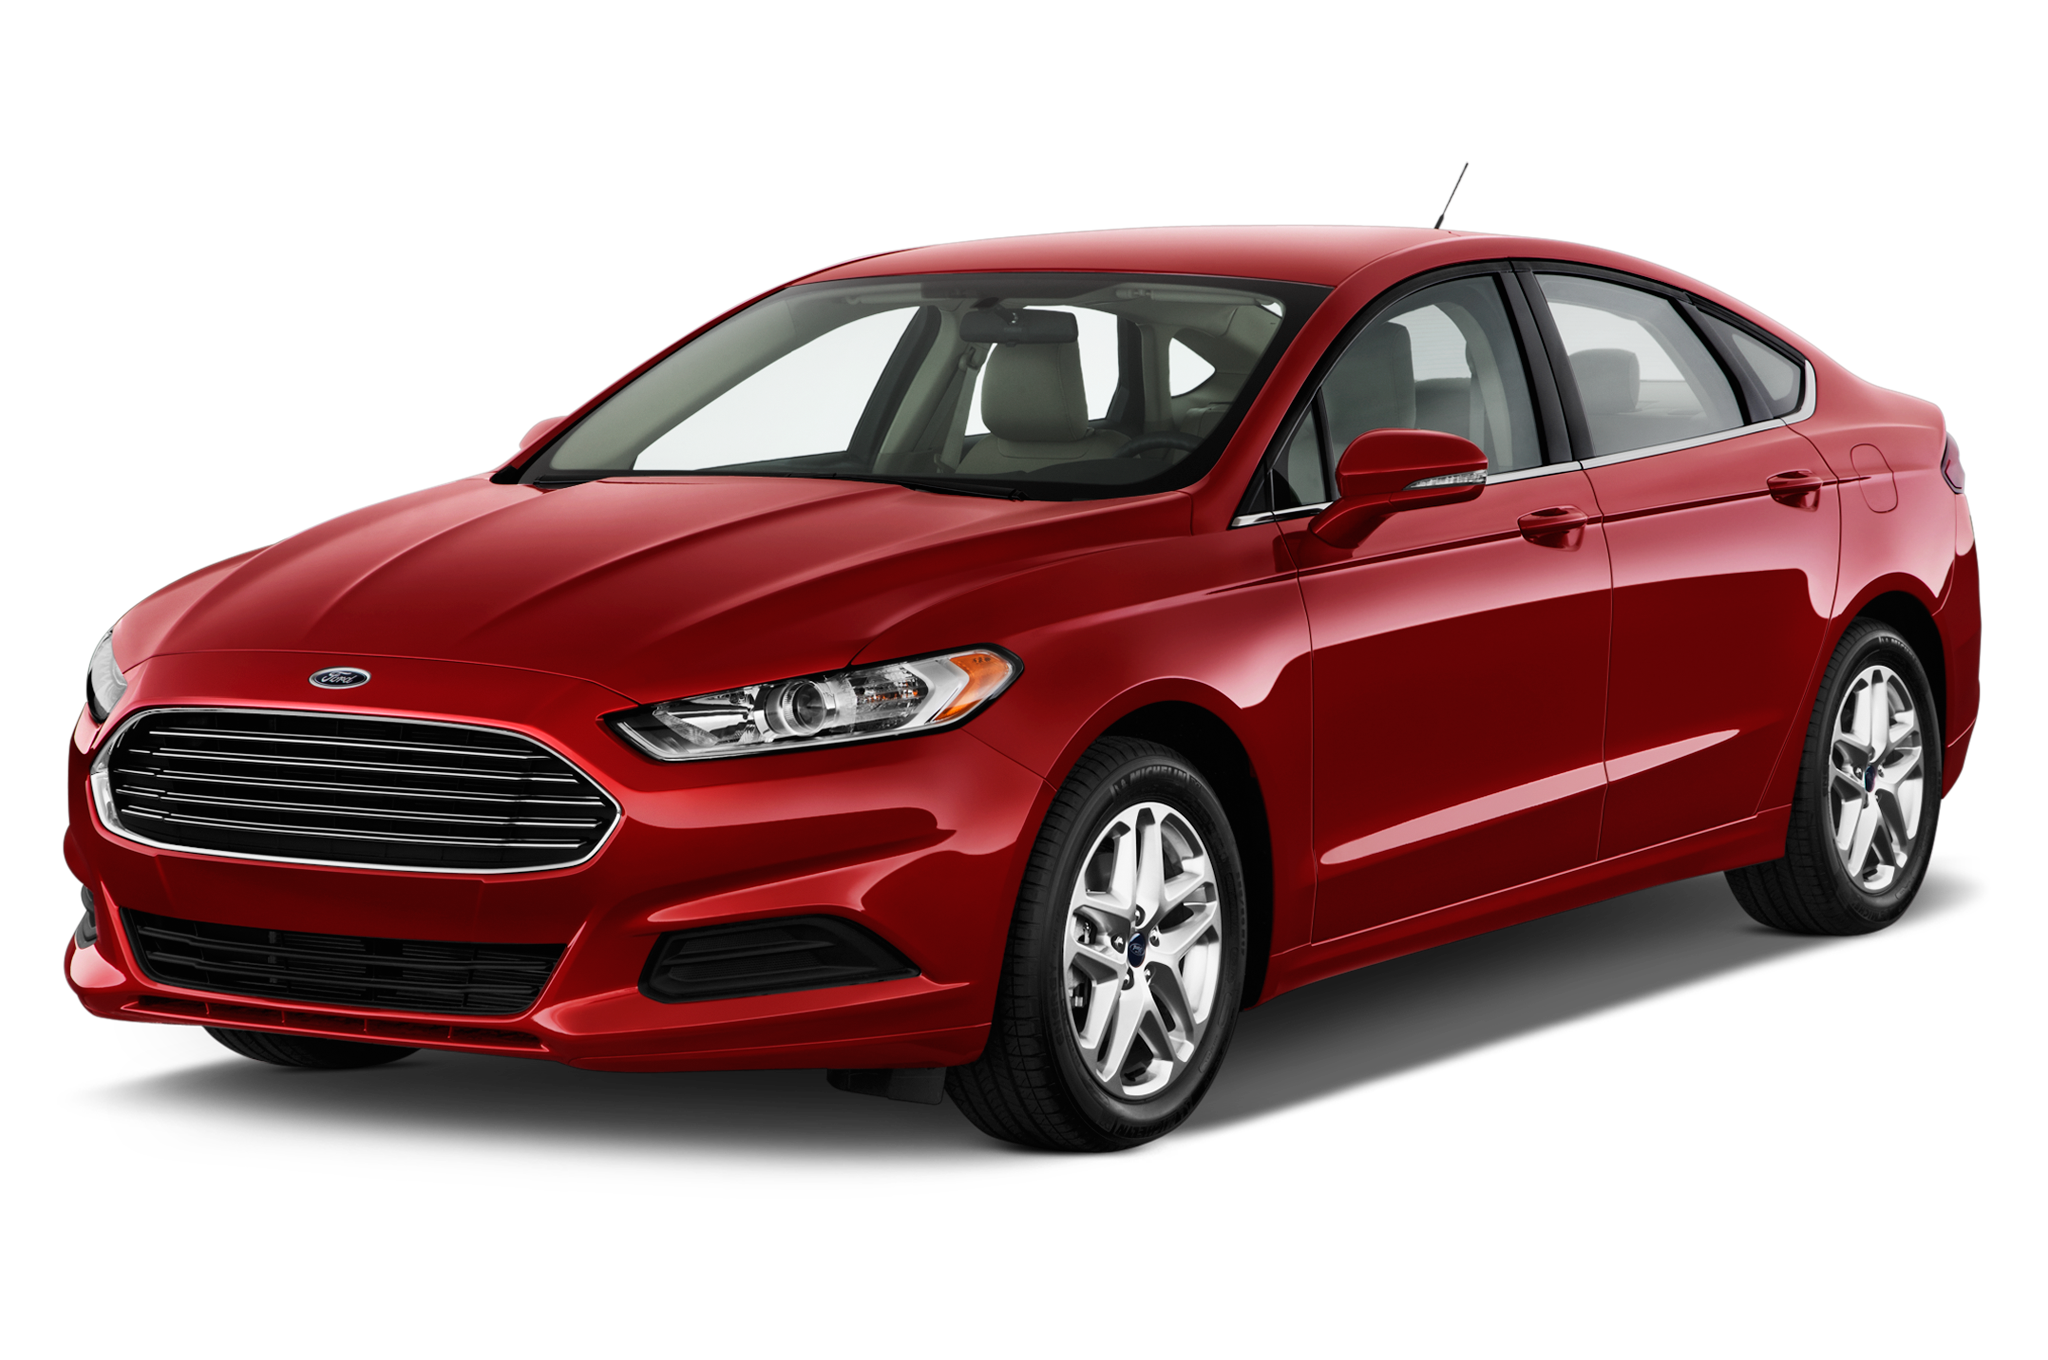 2015 ford fusion drops 1 6l ecoboost engine manual transmission. Black Bedroom Furniture Sets. Home Design Ideas